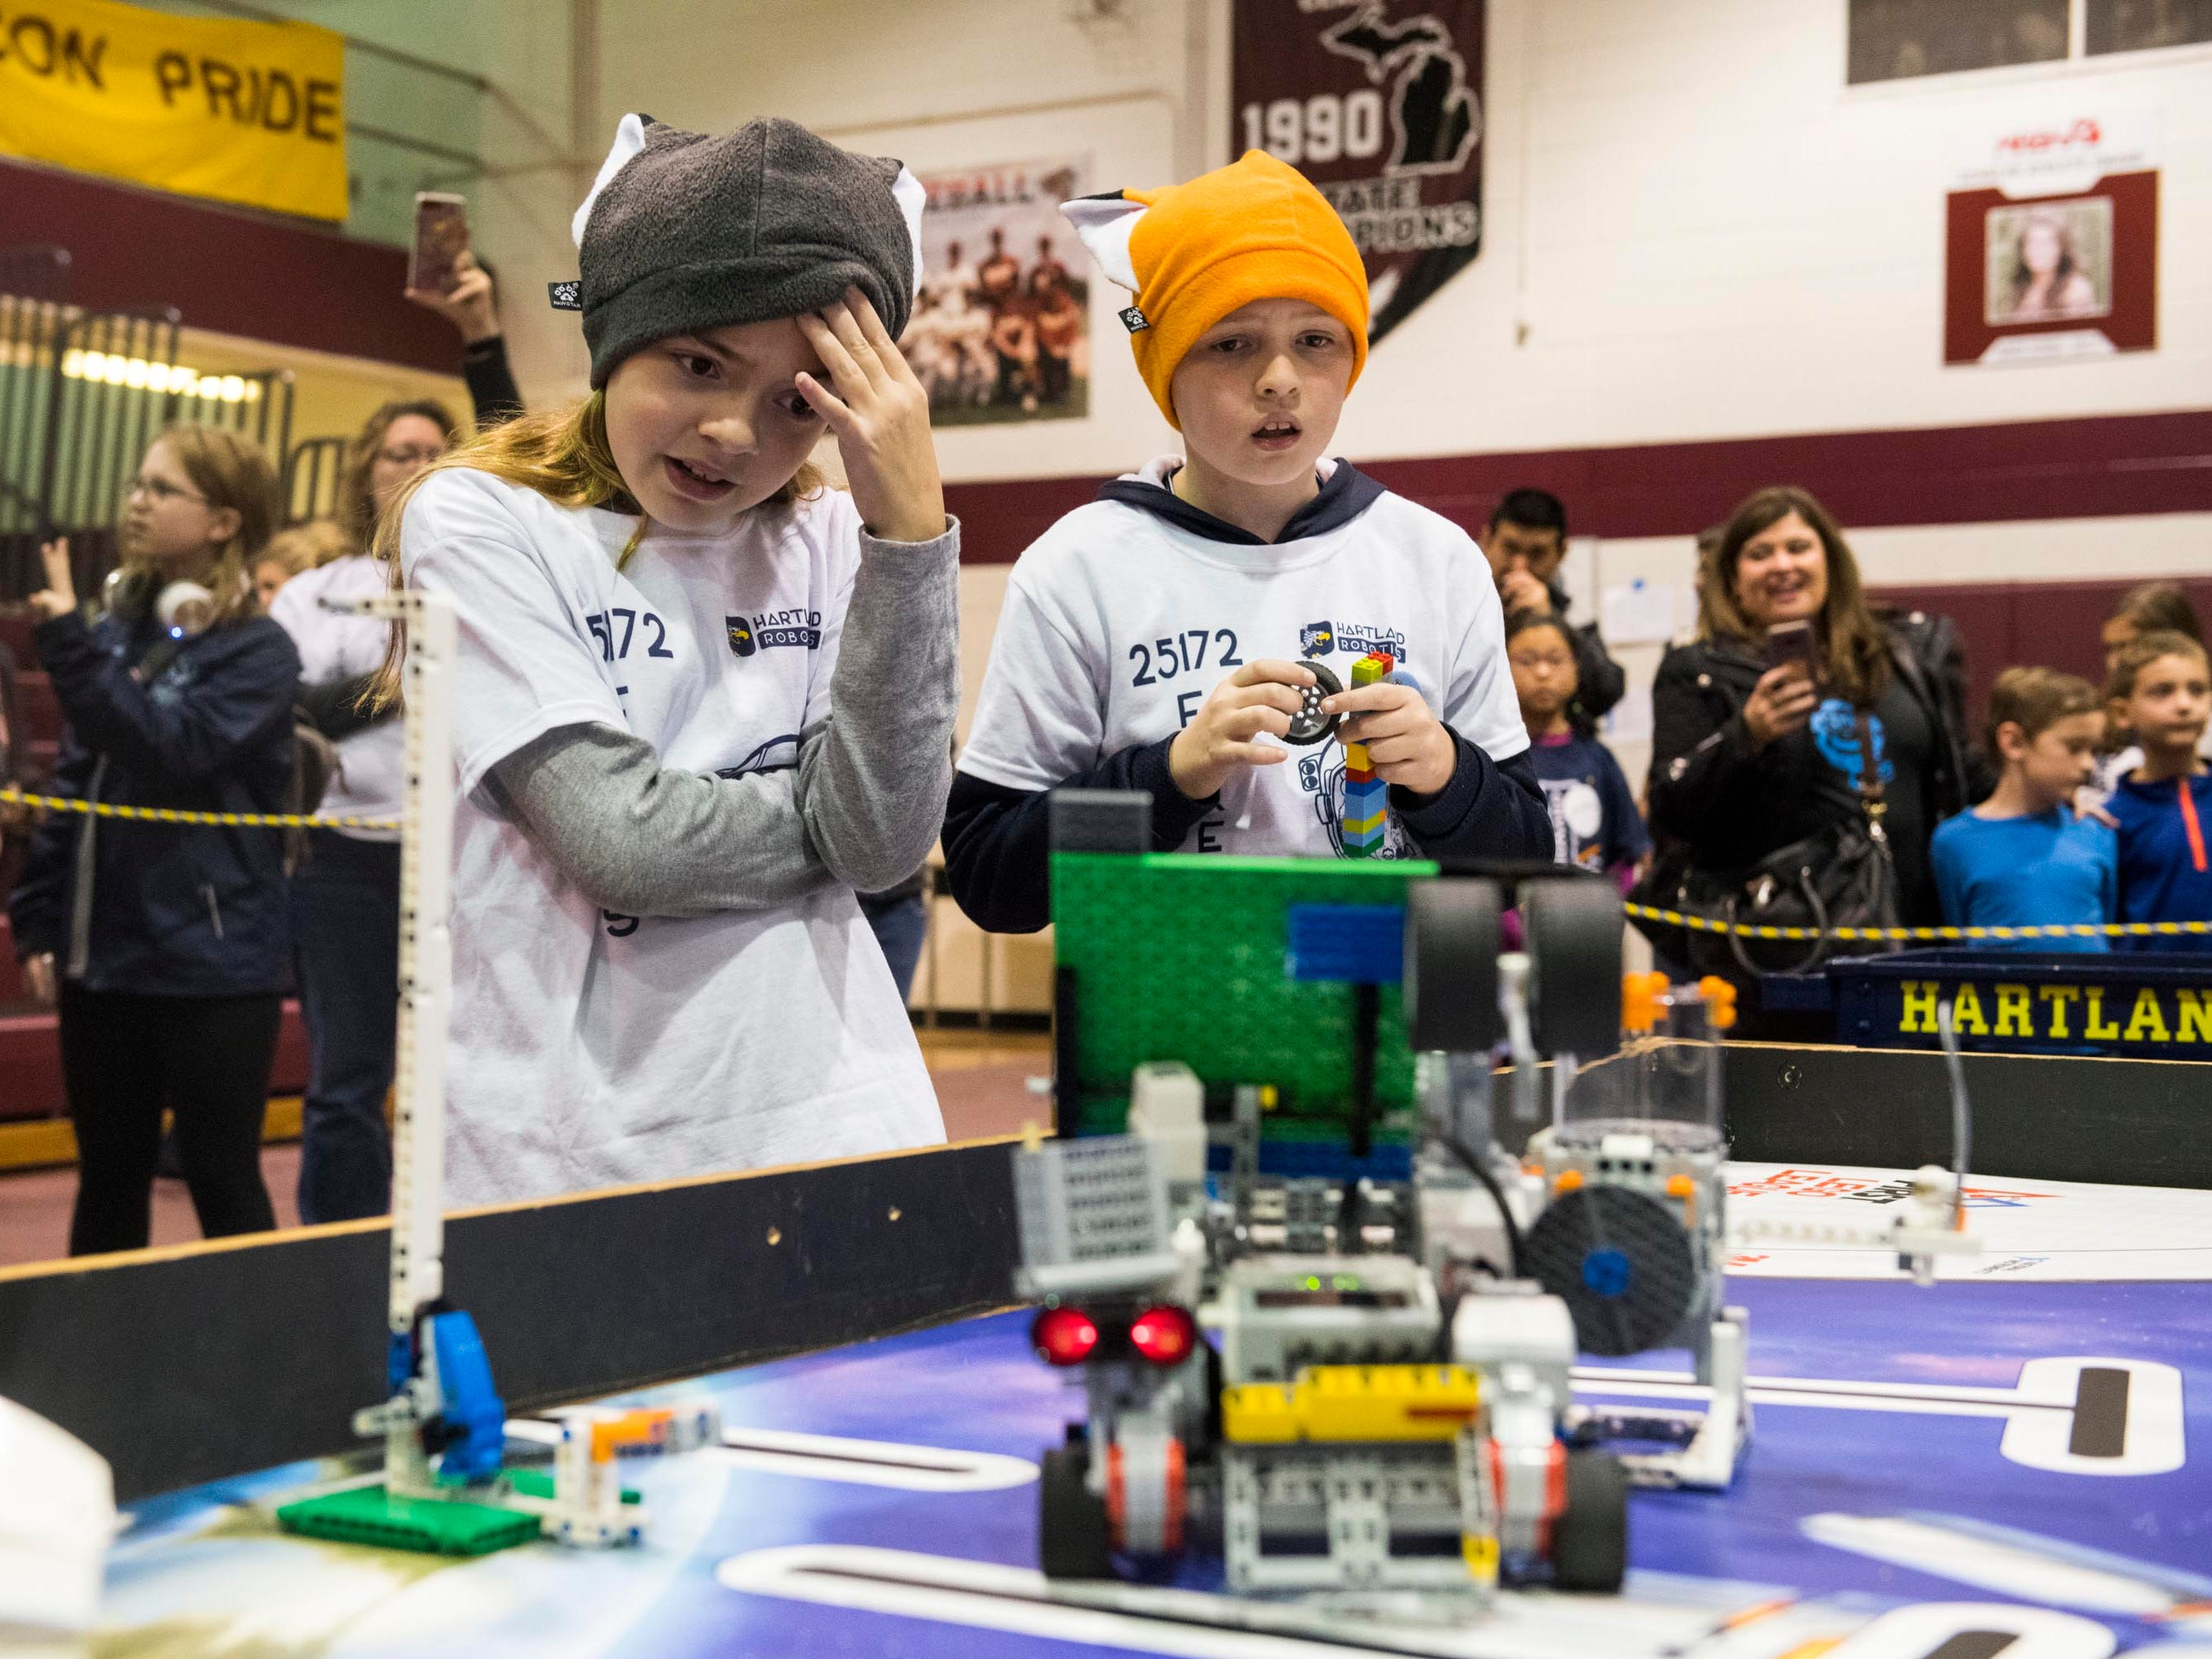 Charlee Jager, 10, and Carter Smith, 10, of the Hartland Robots team, watch their robot struggle to perform a move in the heat of their competitive round at the annual UCS ThunderQuest.